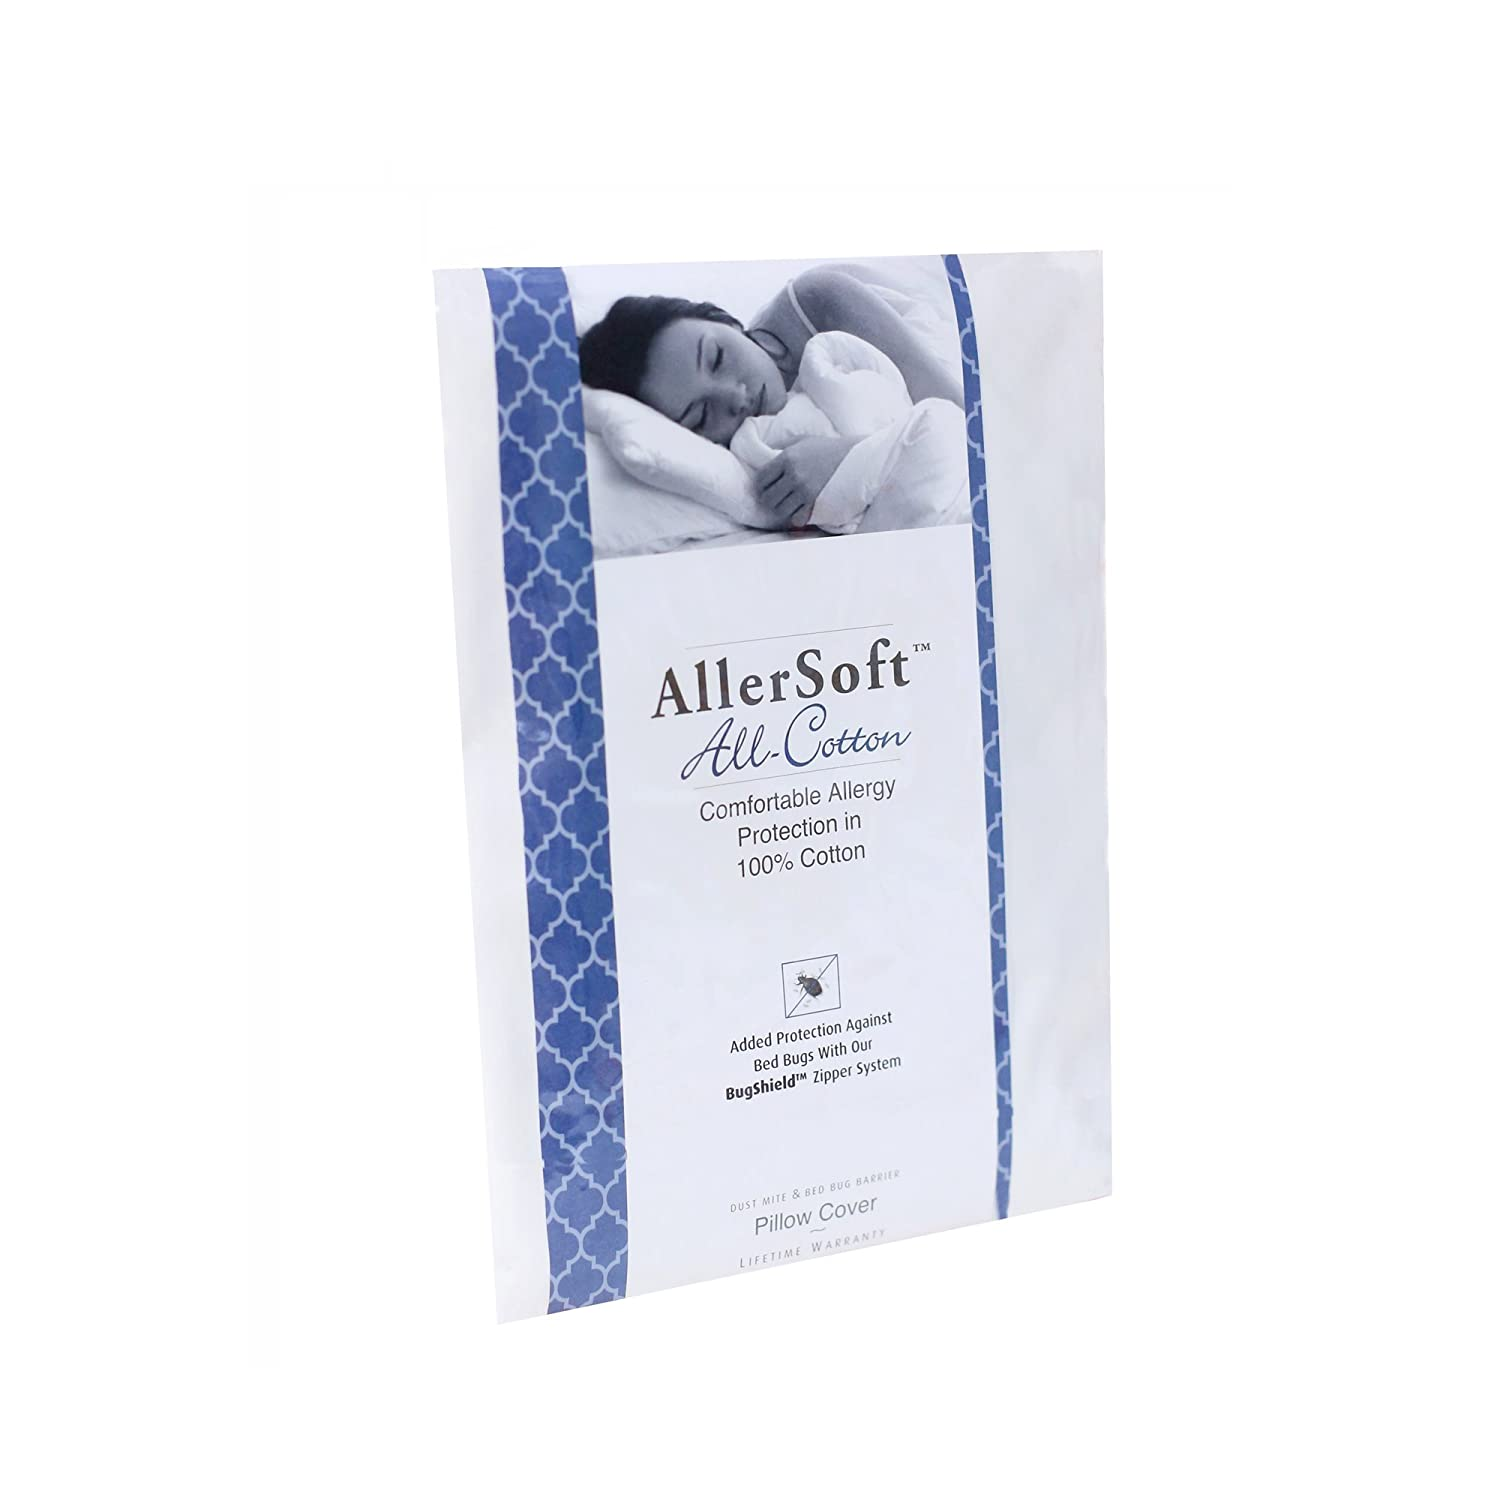 White Allersoft Queen 4 Pack Allergy and Bed Bug Proof Pillow Cover